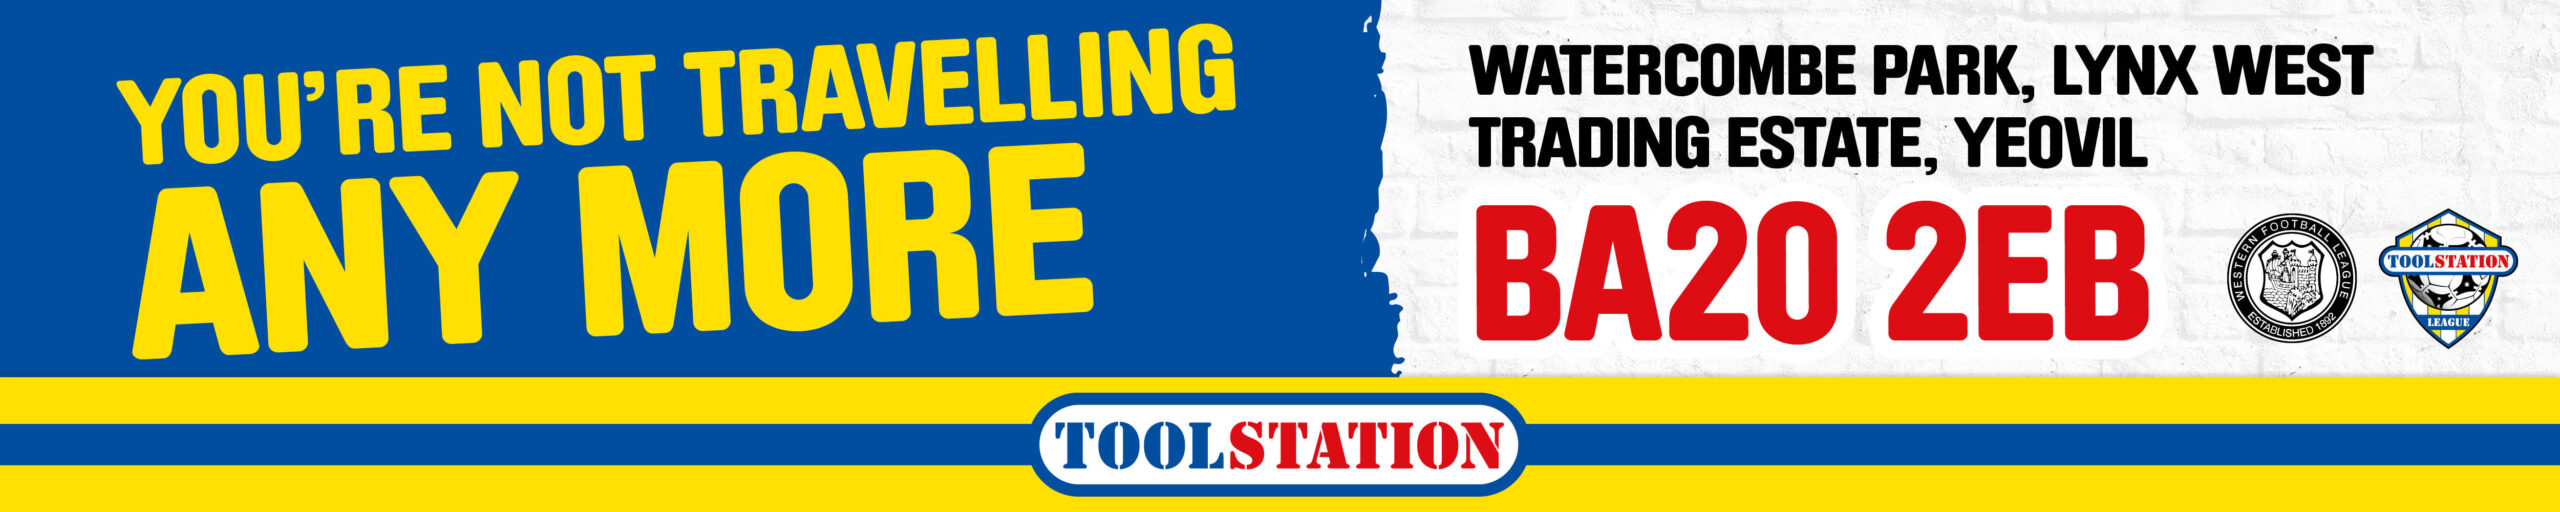 Yeovil Toolstation